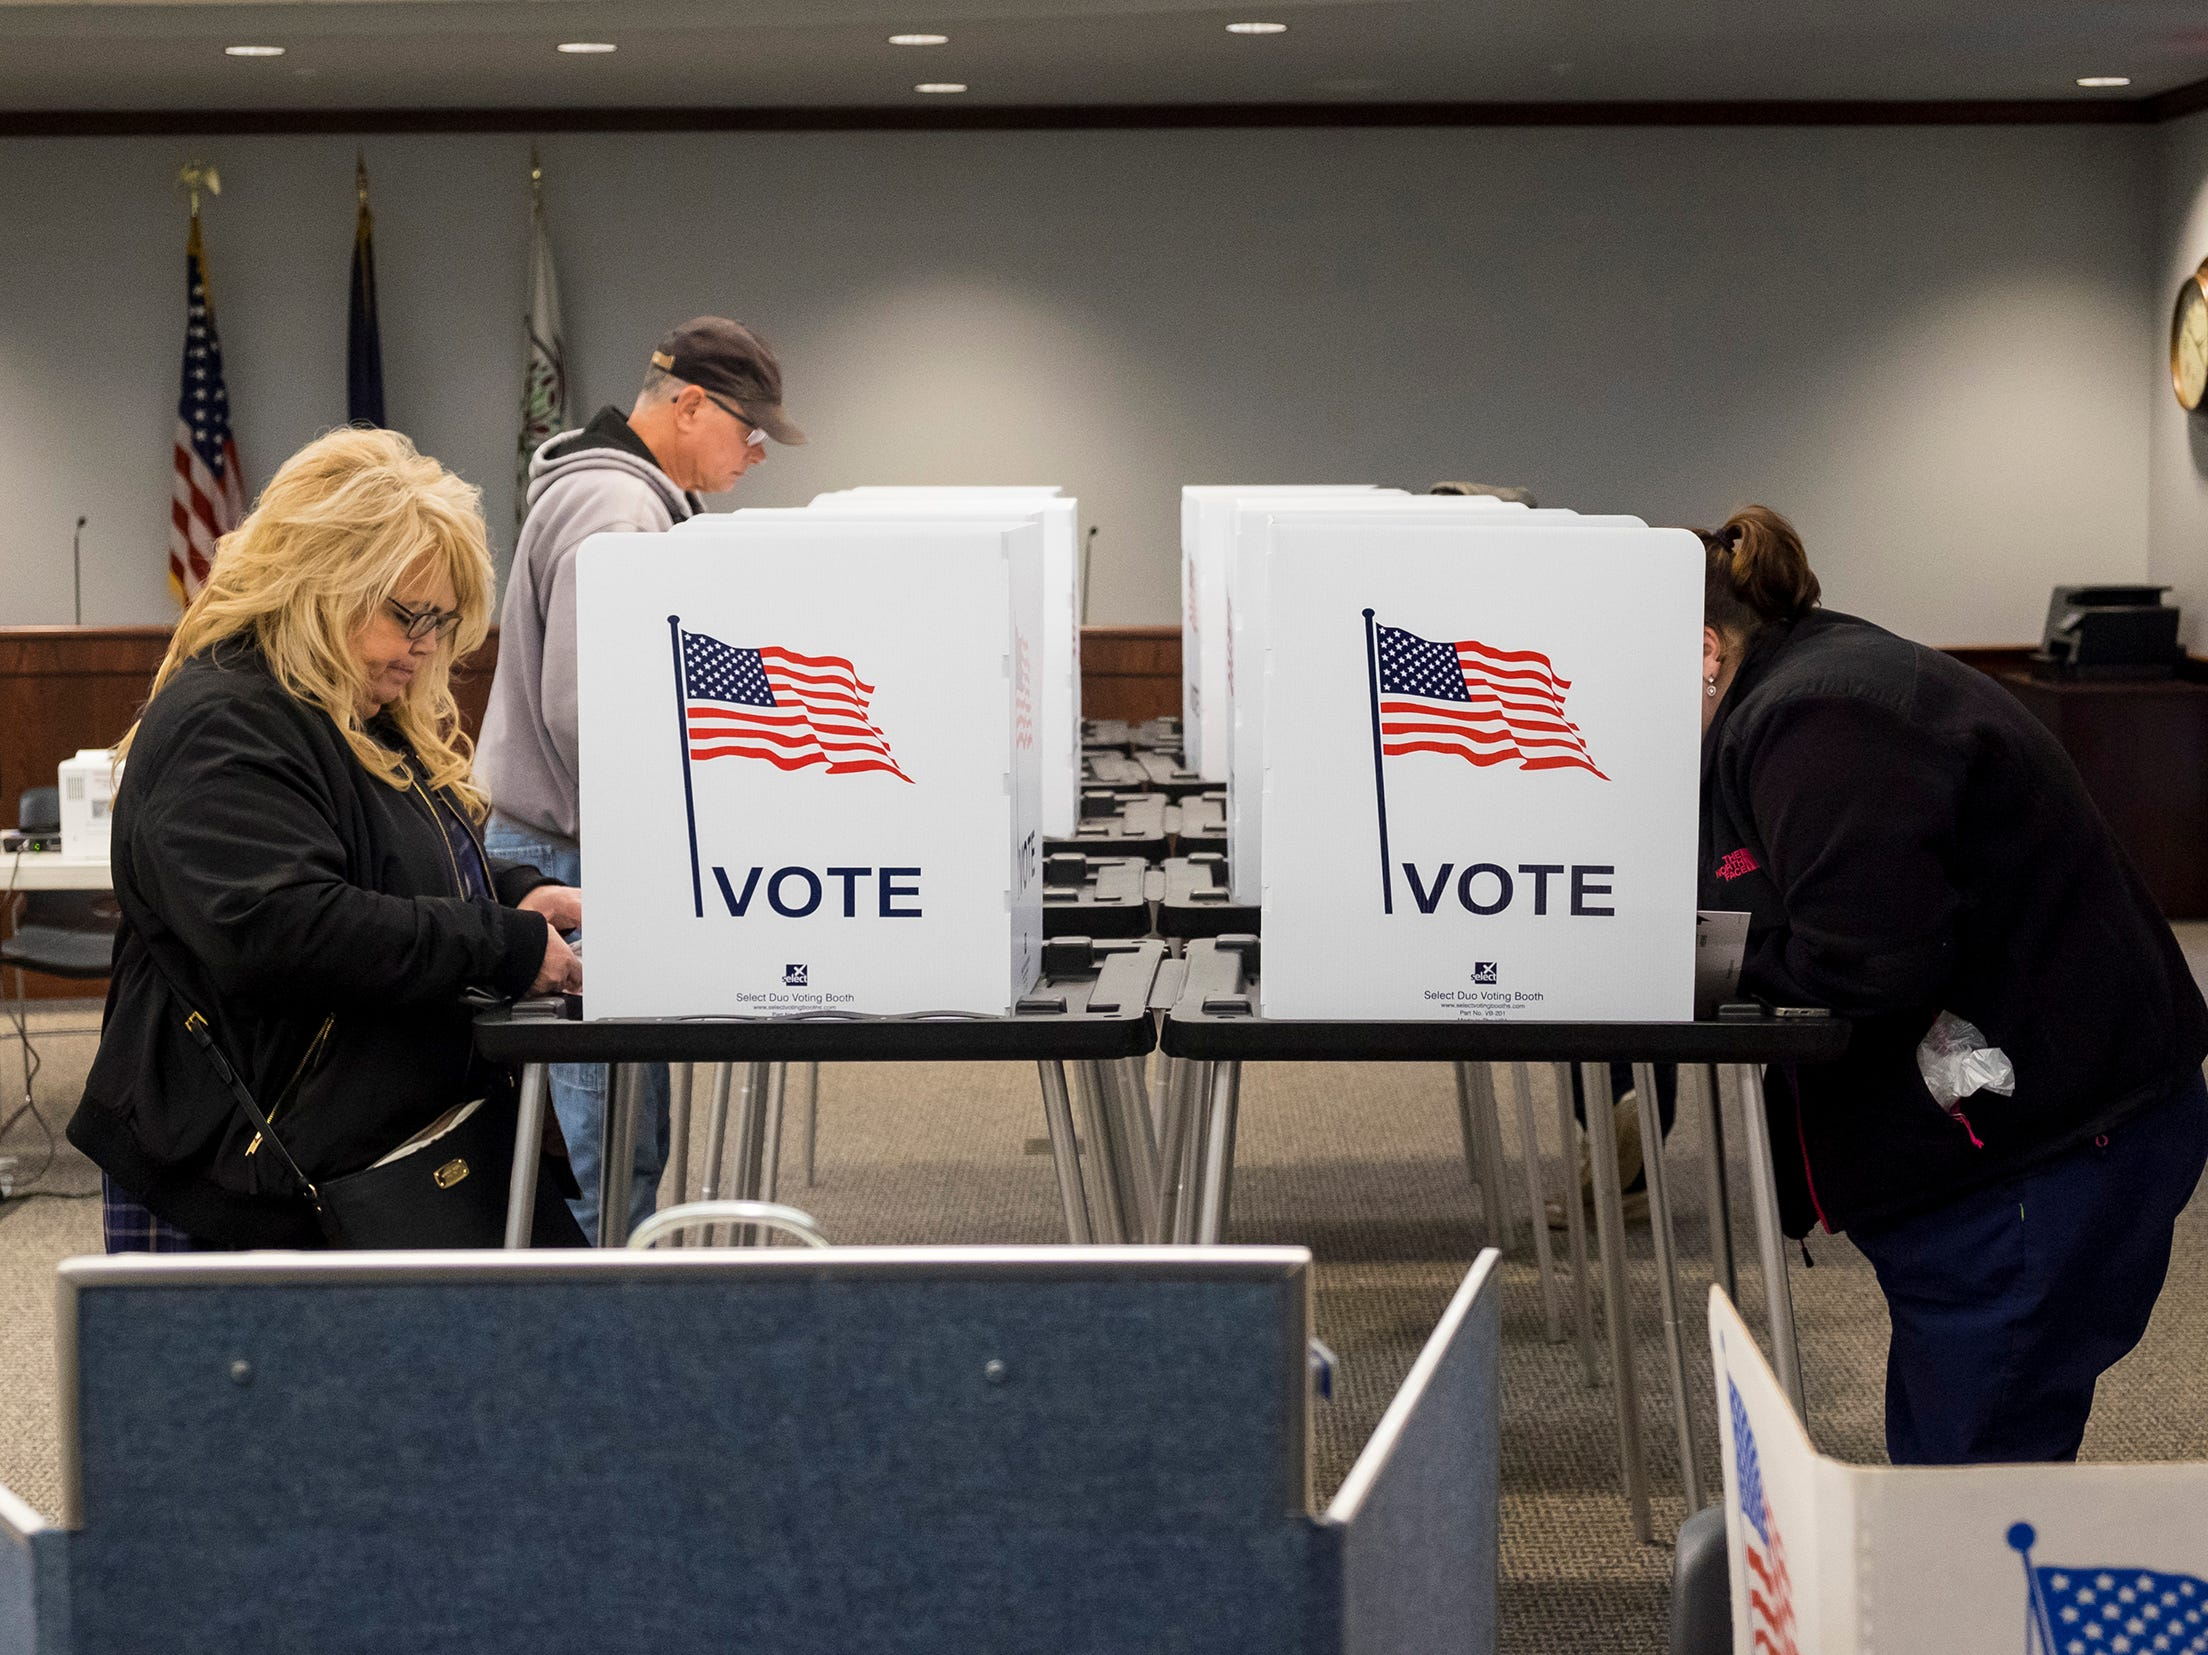 Fort Gratiot residents Tanya Stover, left, and Heather Clark fill out their ballots Tuesday, Nov. 6, 2018 at precinct 3 in the Fort Gratiot Municipal Center.